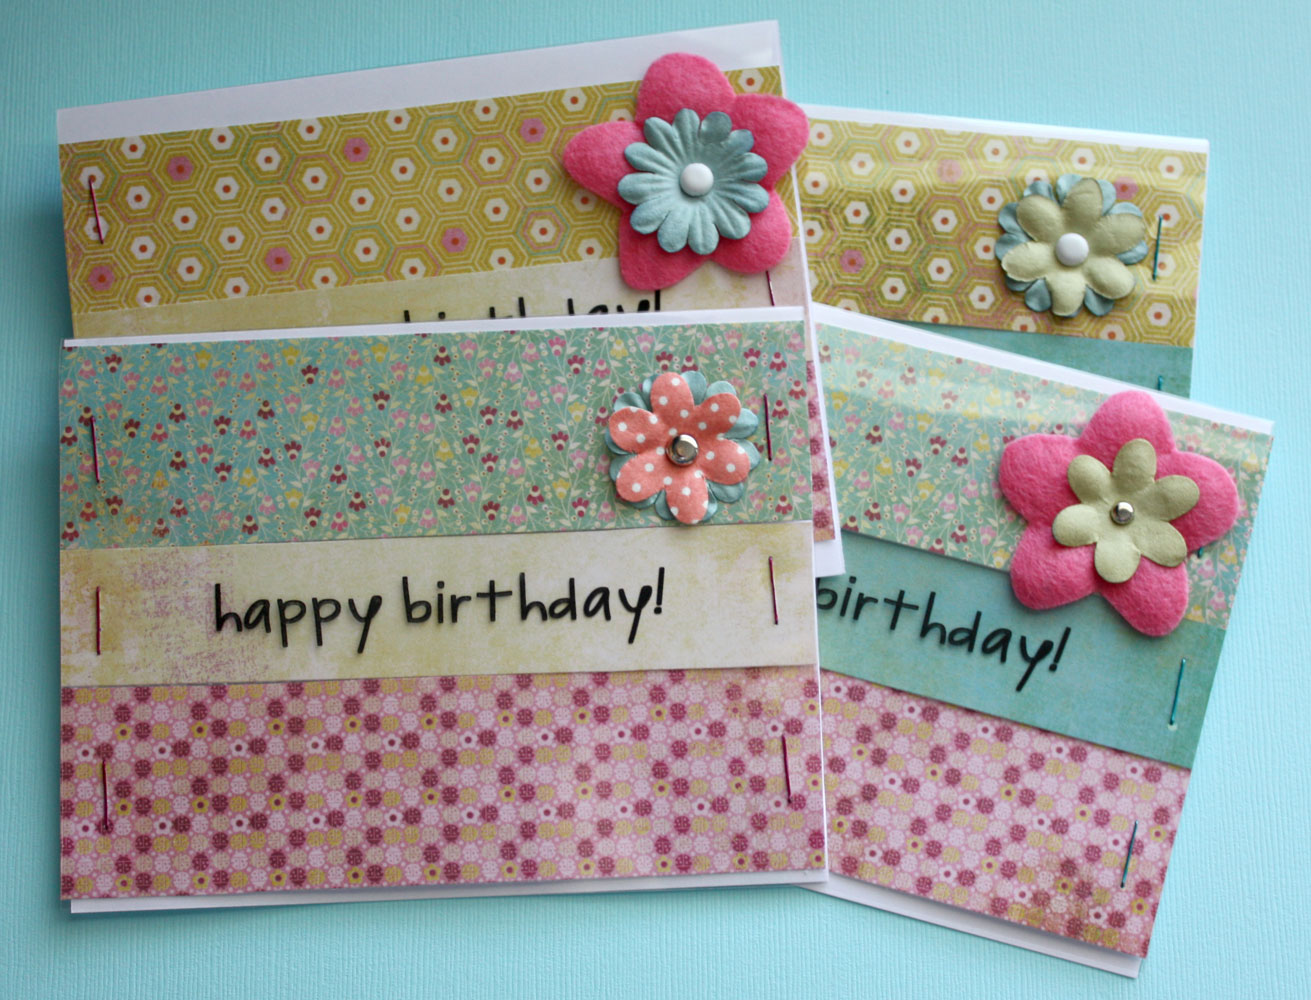 Amy cornwell designs create happy birthday cards and theyre for create happy birthday cards and theyre for sale bookmarktalkfo Image collections